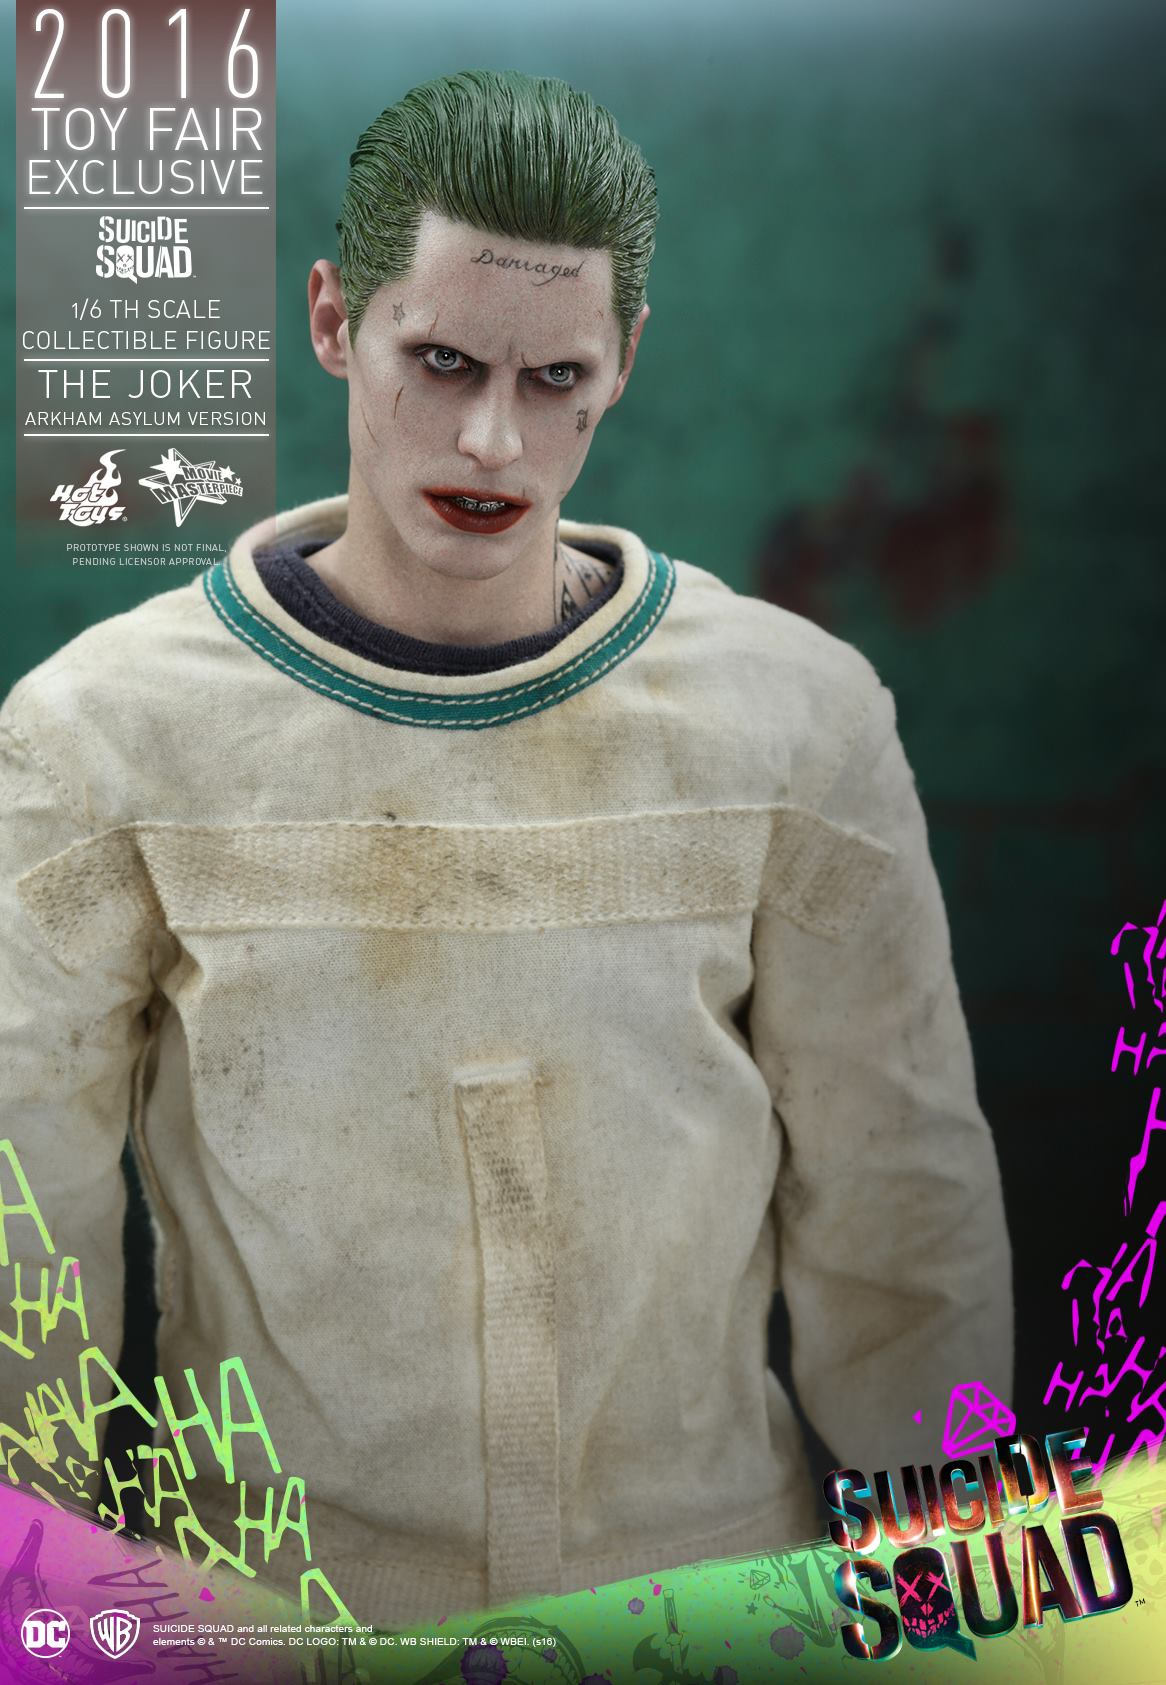 Suicide Squad Hot Toys - Joker (Arkham Version)